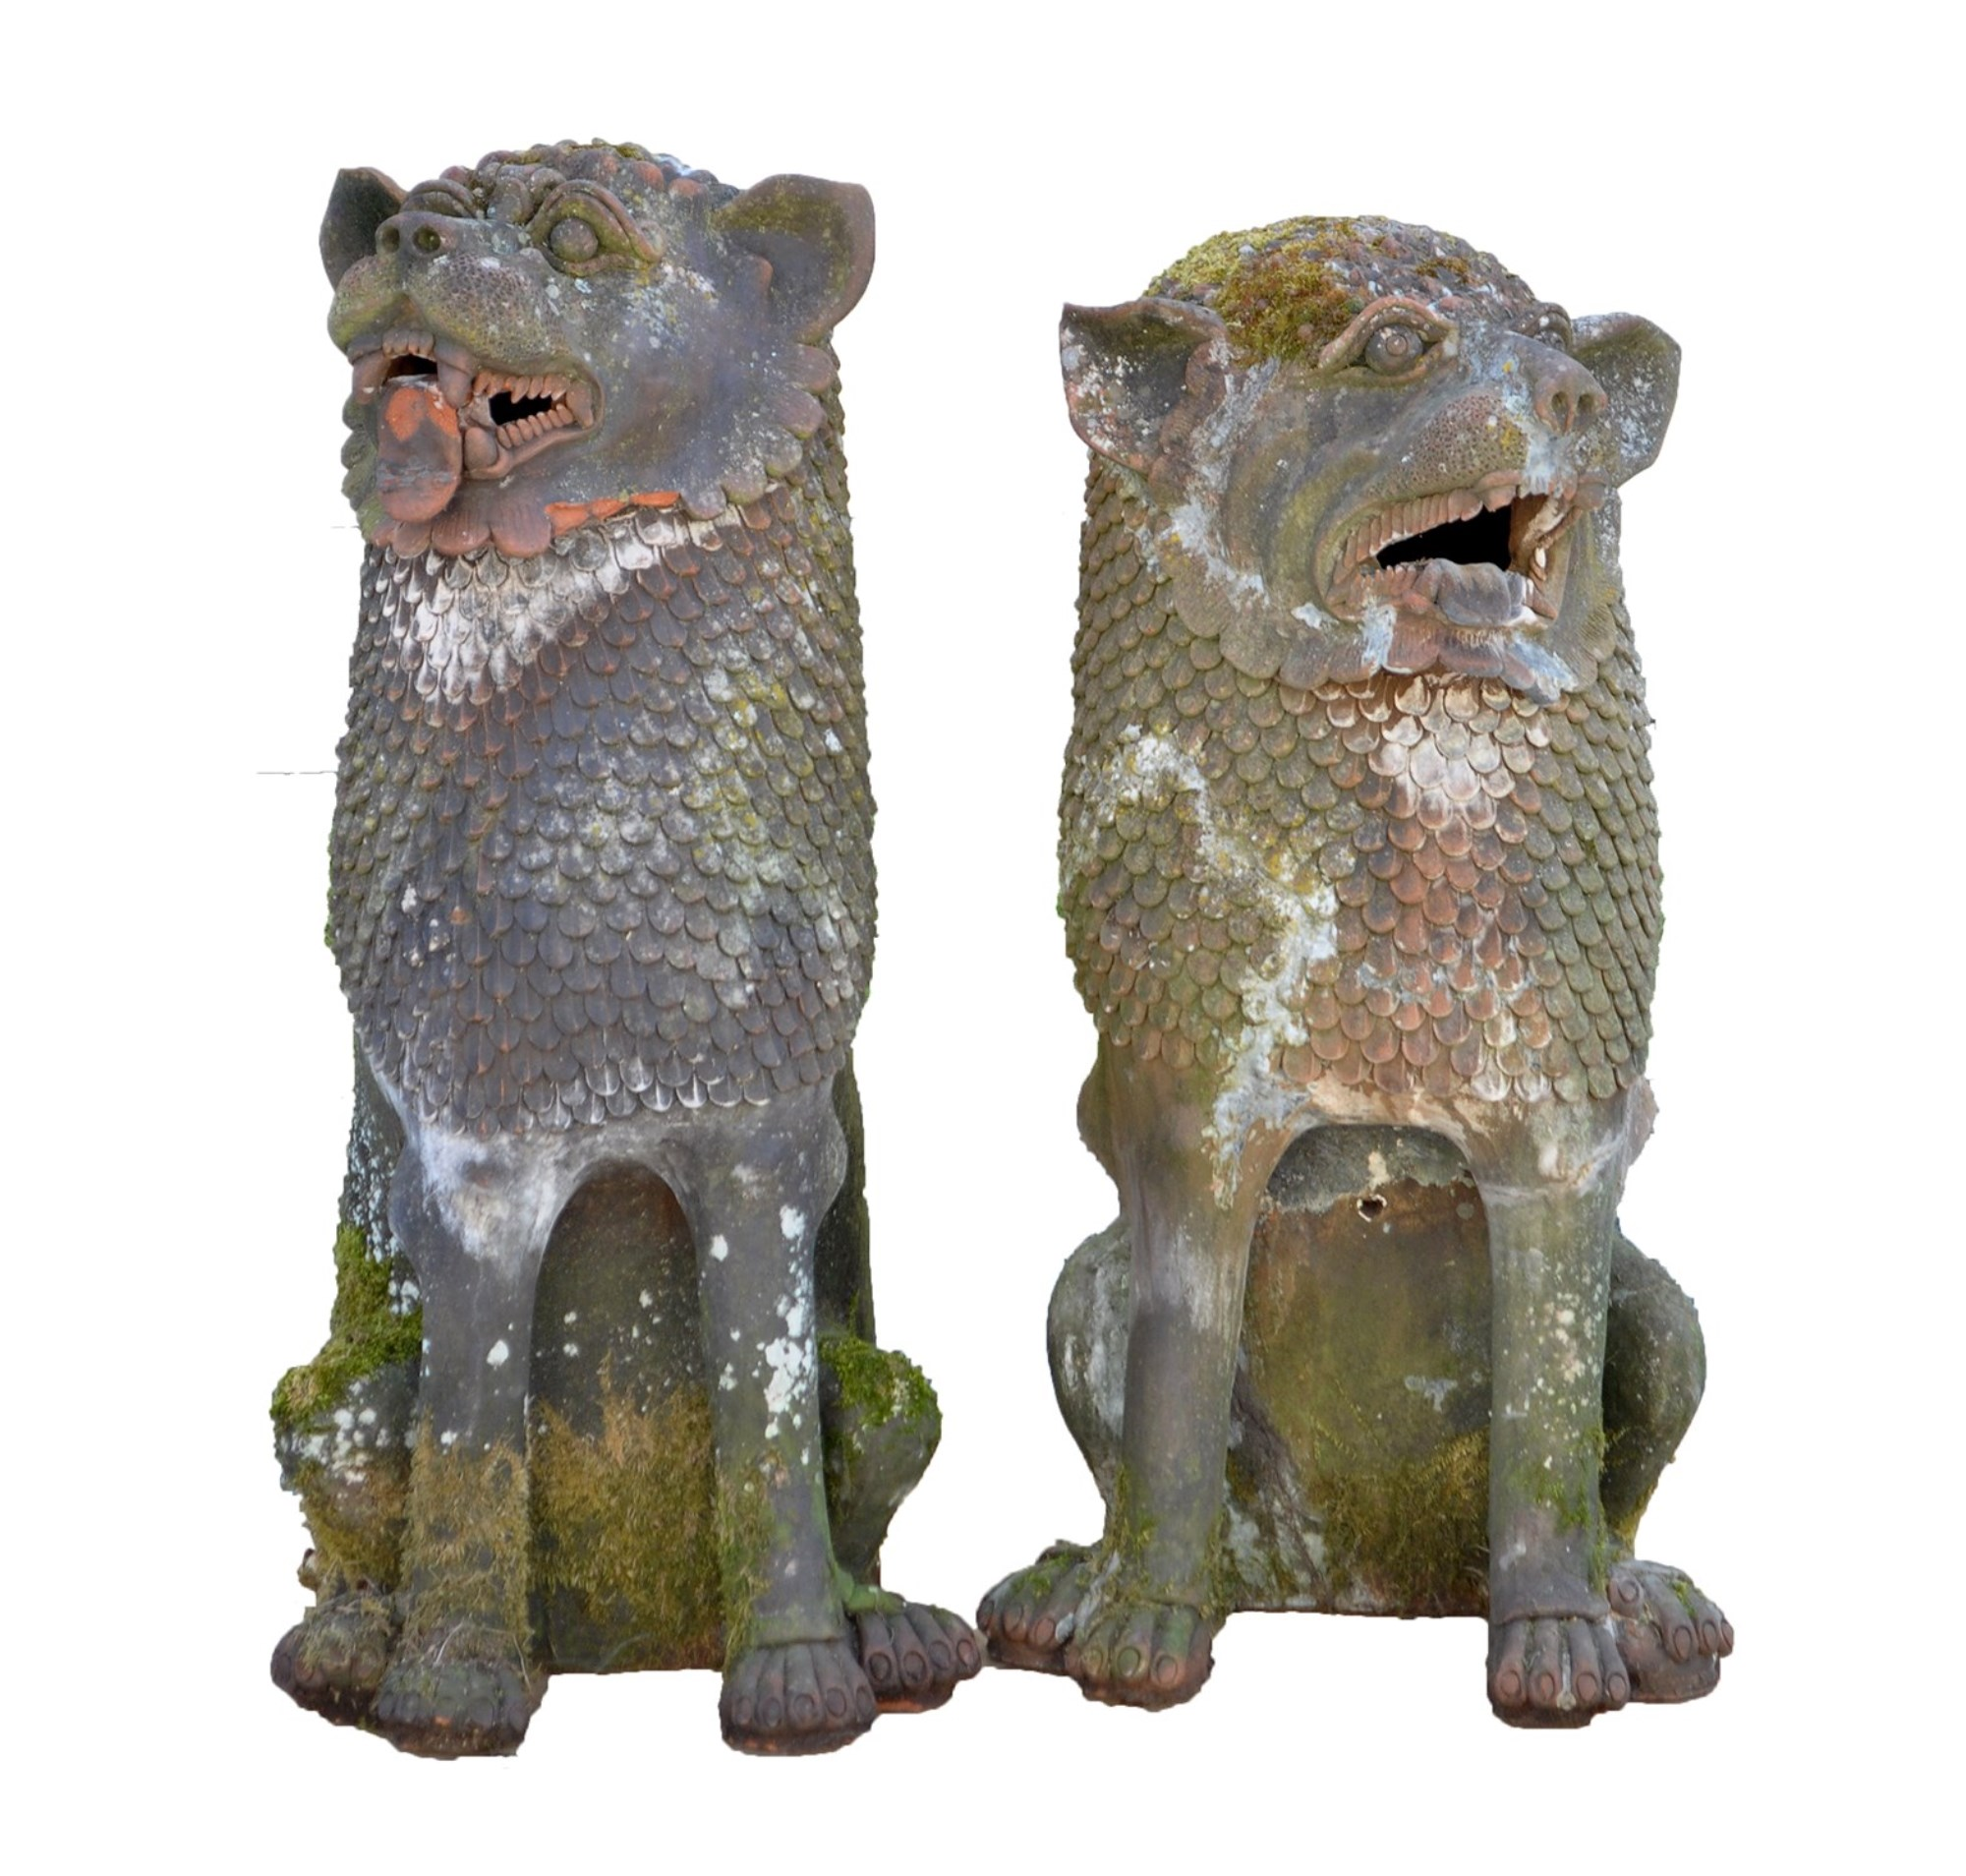 Two Chinese terracotta dogs of foe garden ornaments, each with open mouths and scale manes